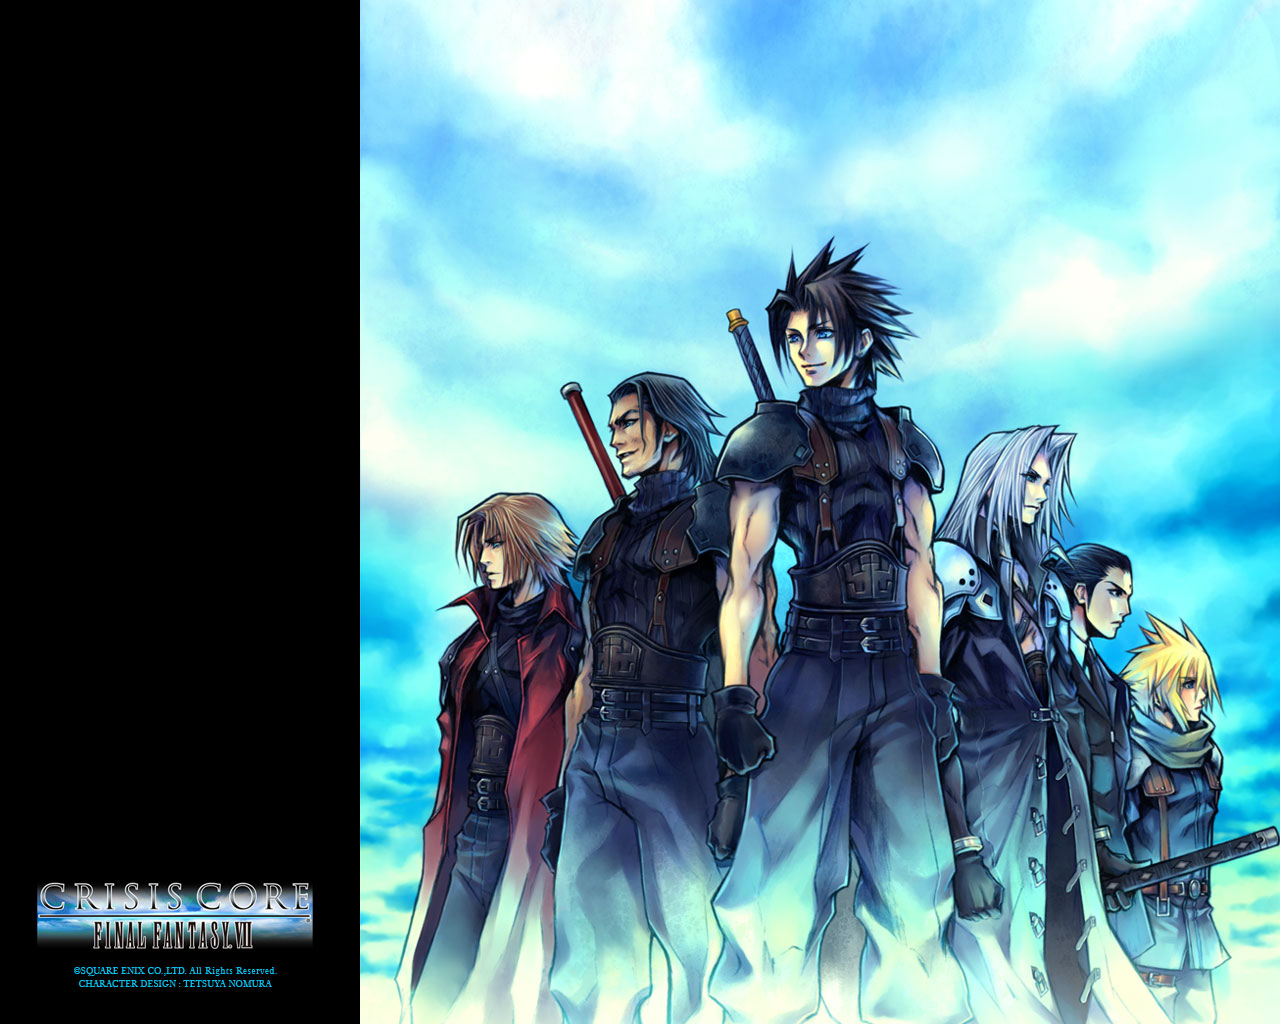 Eyes on final fantasy wallpapers wallpapers altavistaventures Gallery